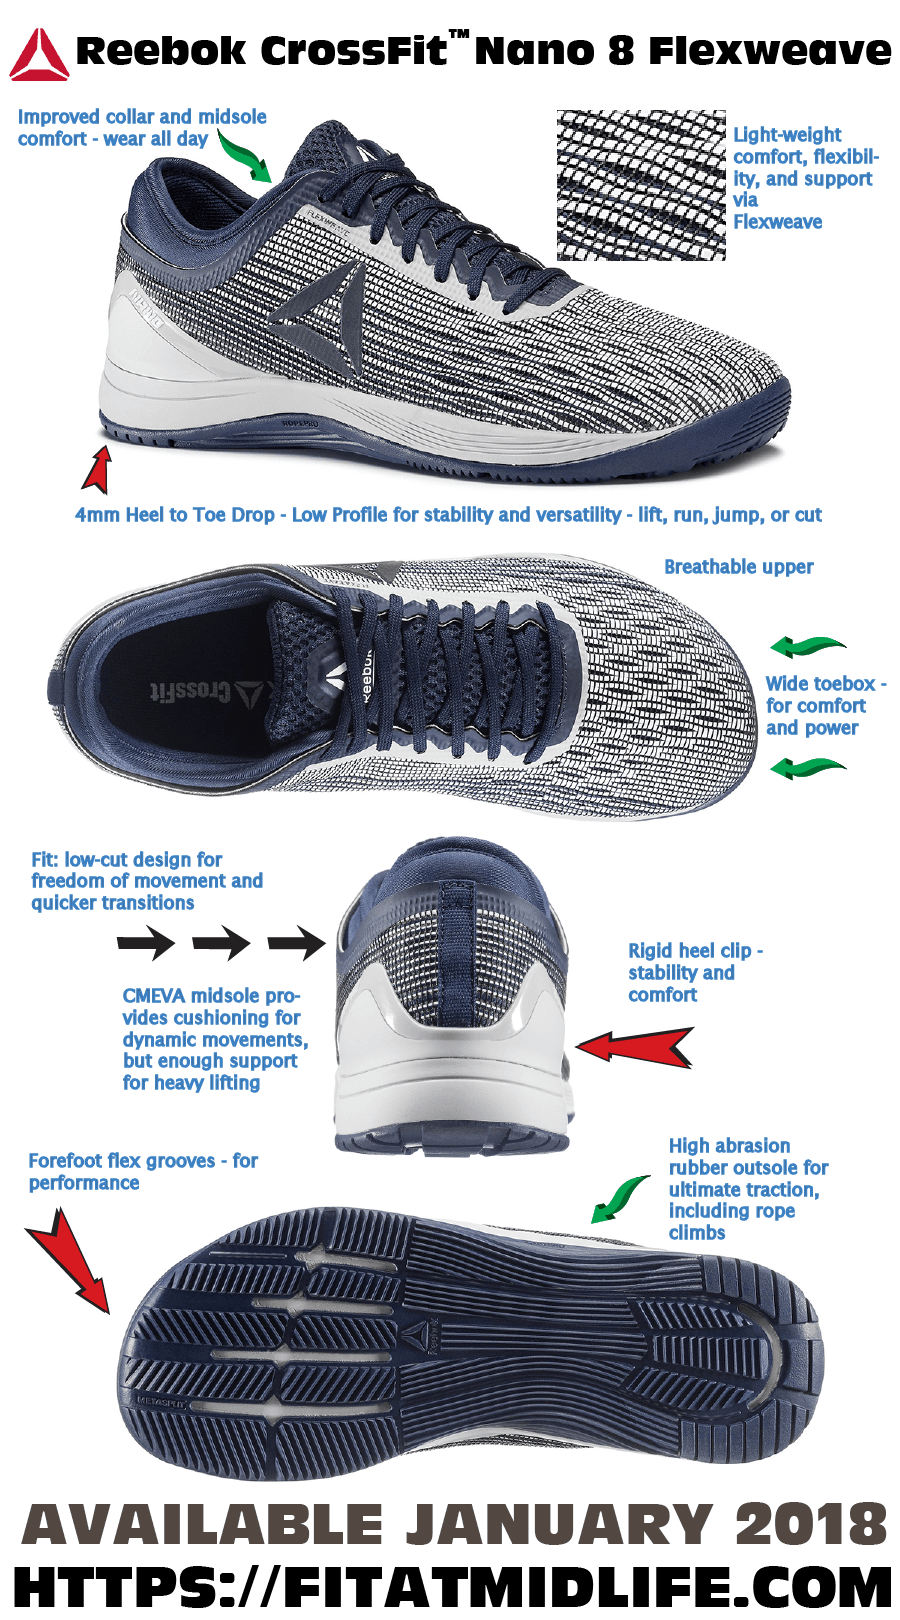 Reebok CrossFit Nano 8 Flexweave - Infographic - find out all about this  great cross training bbd12b92f